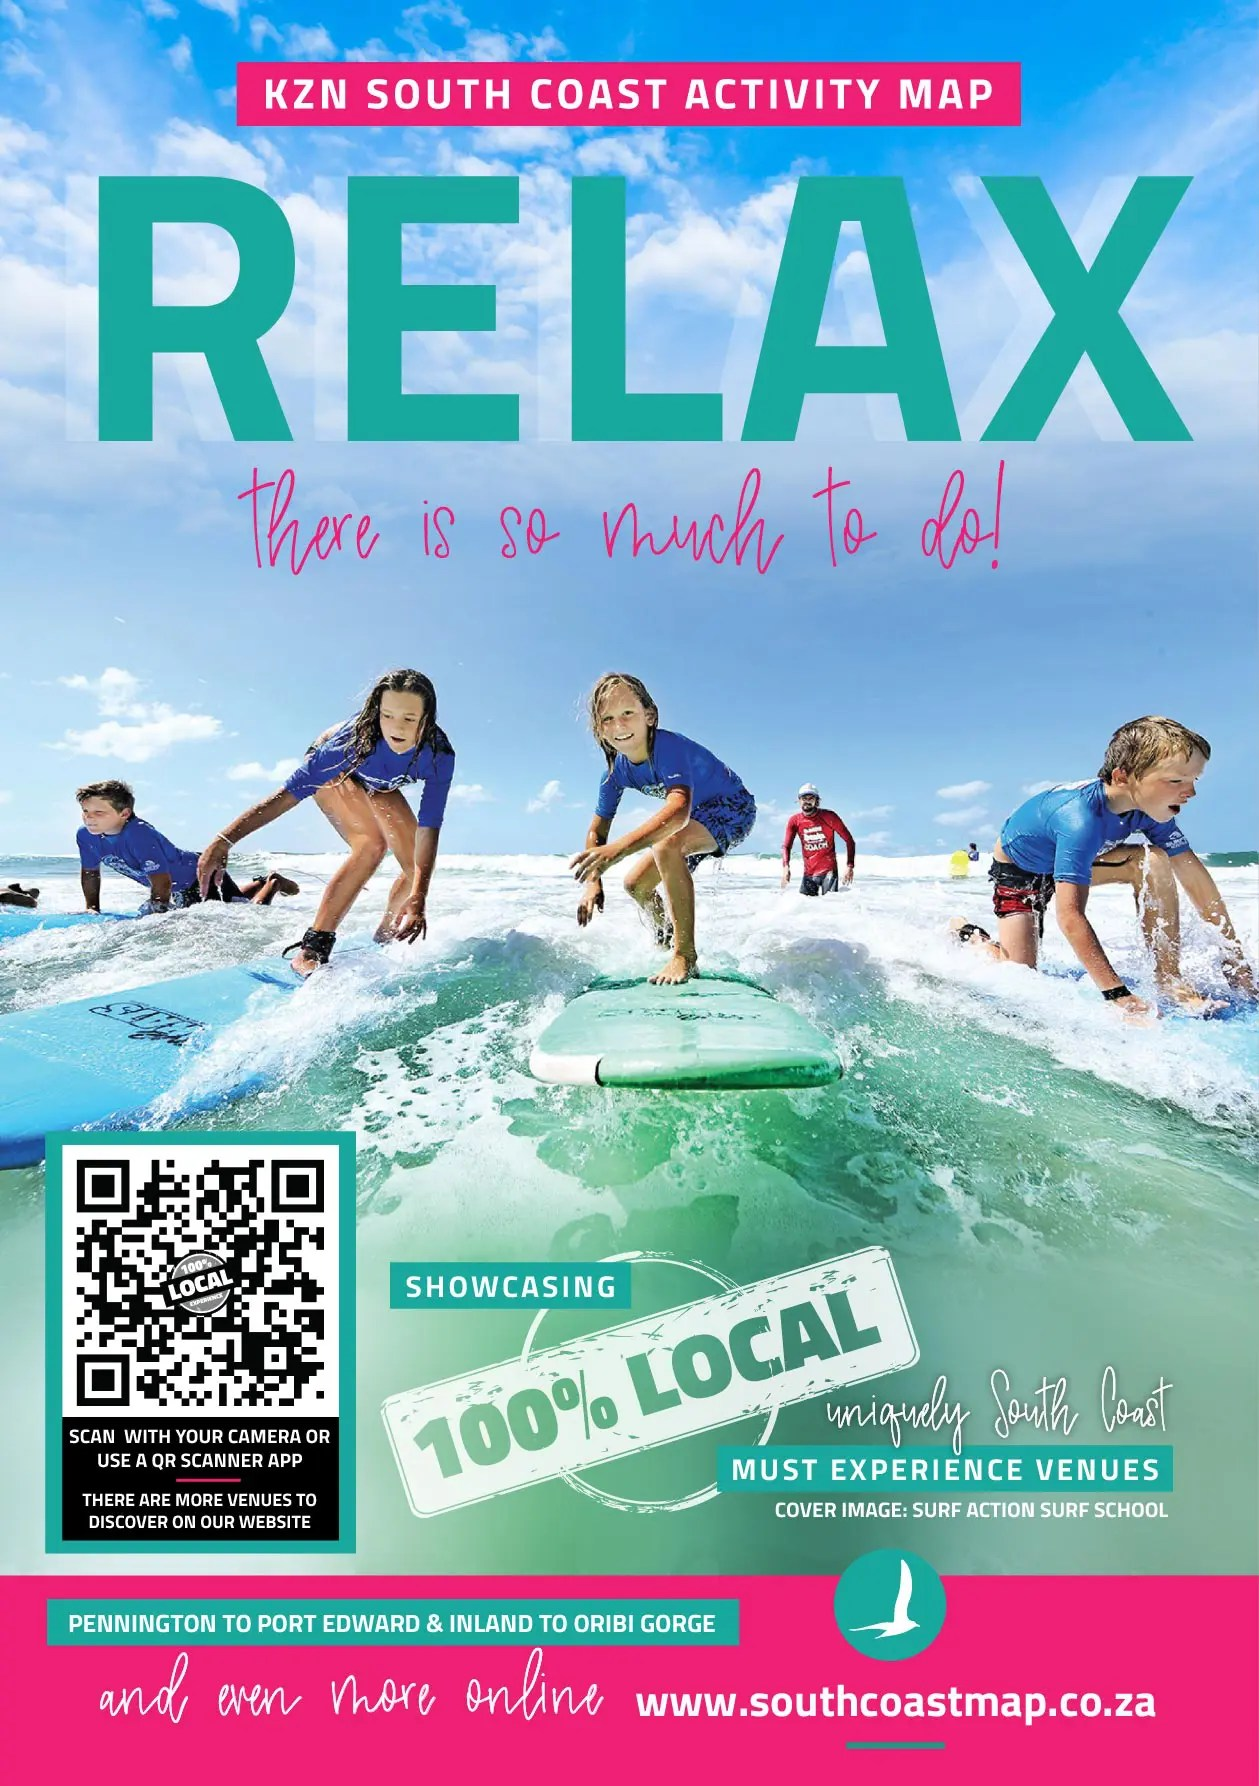 Relax South Coast Activity Map Things to do